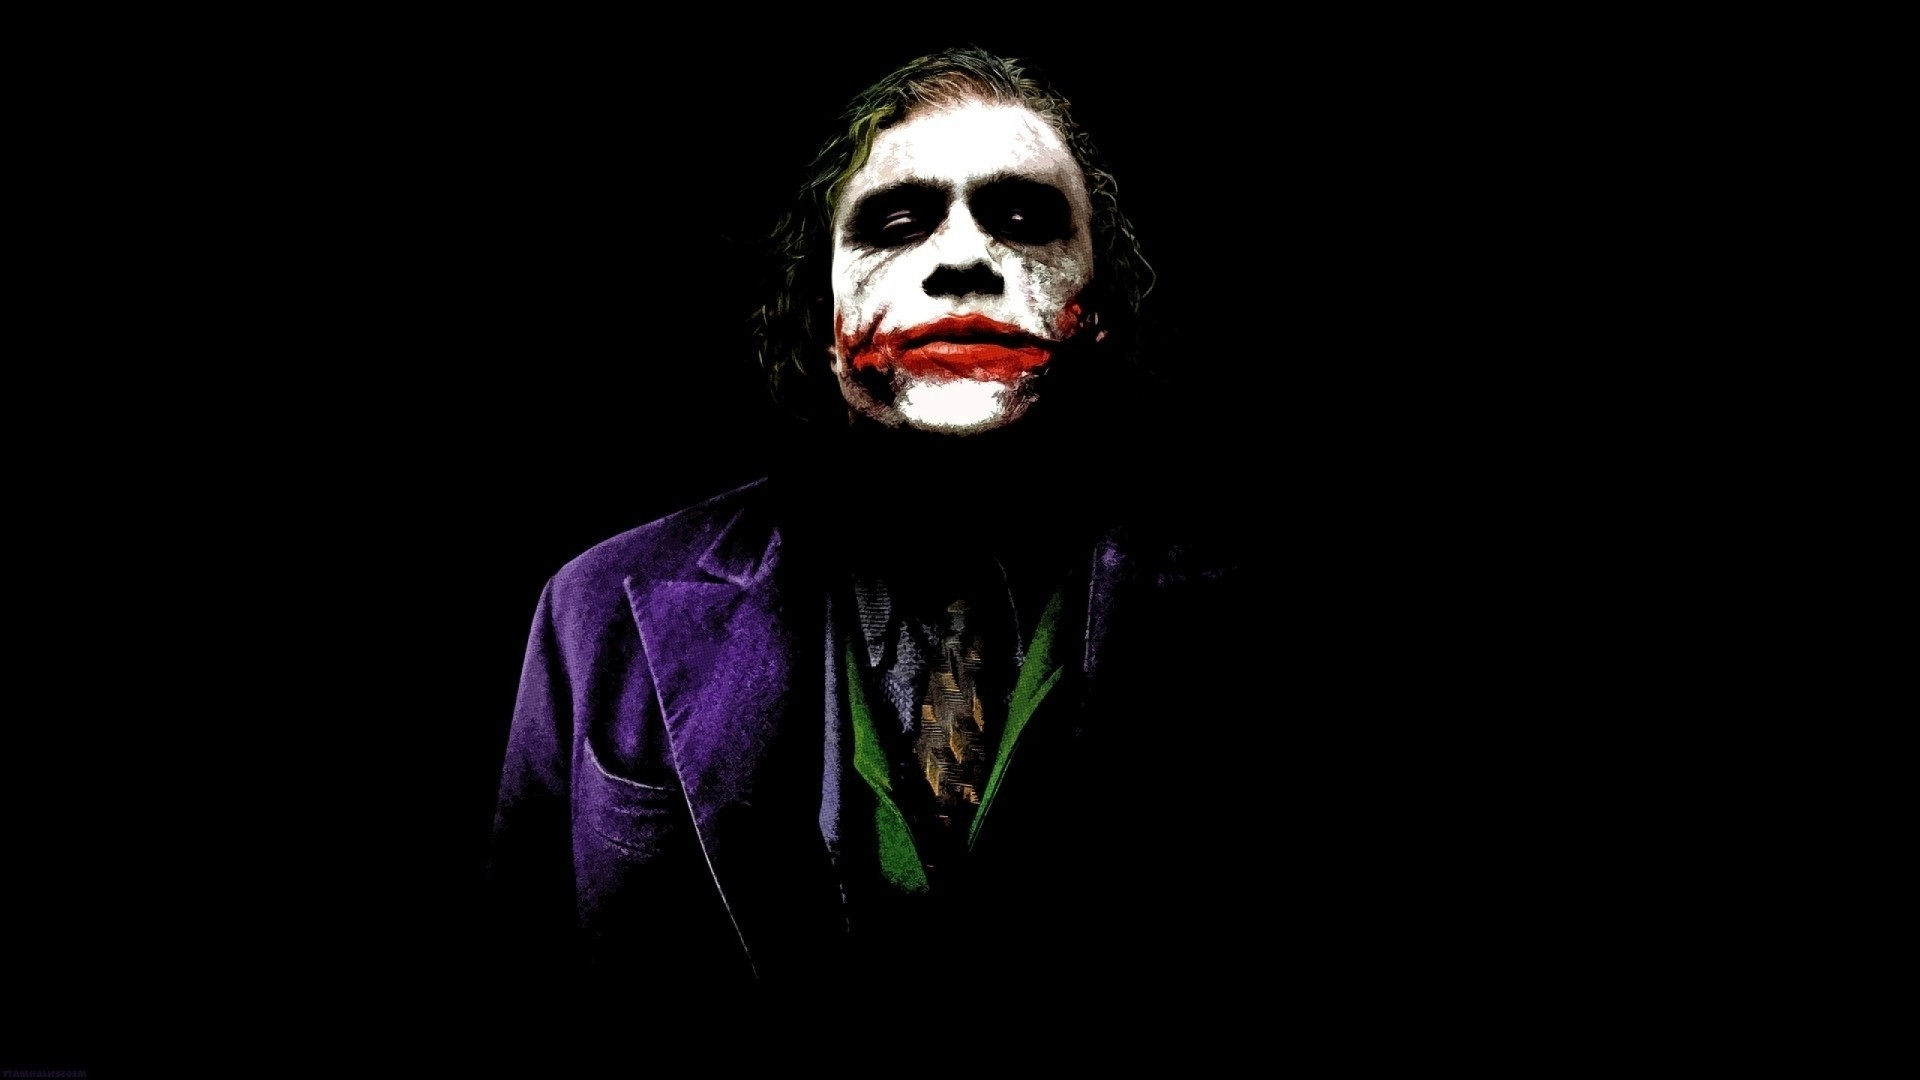 Heath ledger joker wallpaper hd 79 images for Joker immagini hd